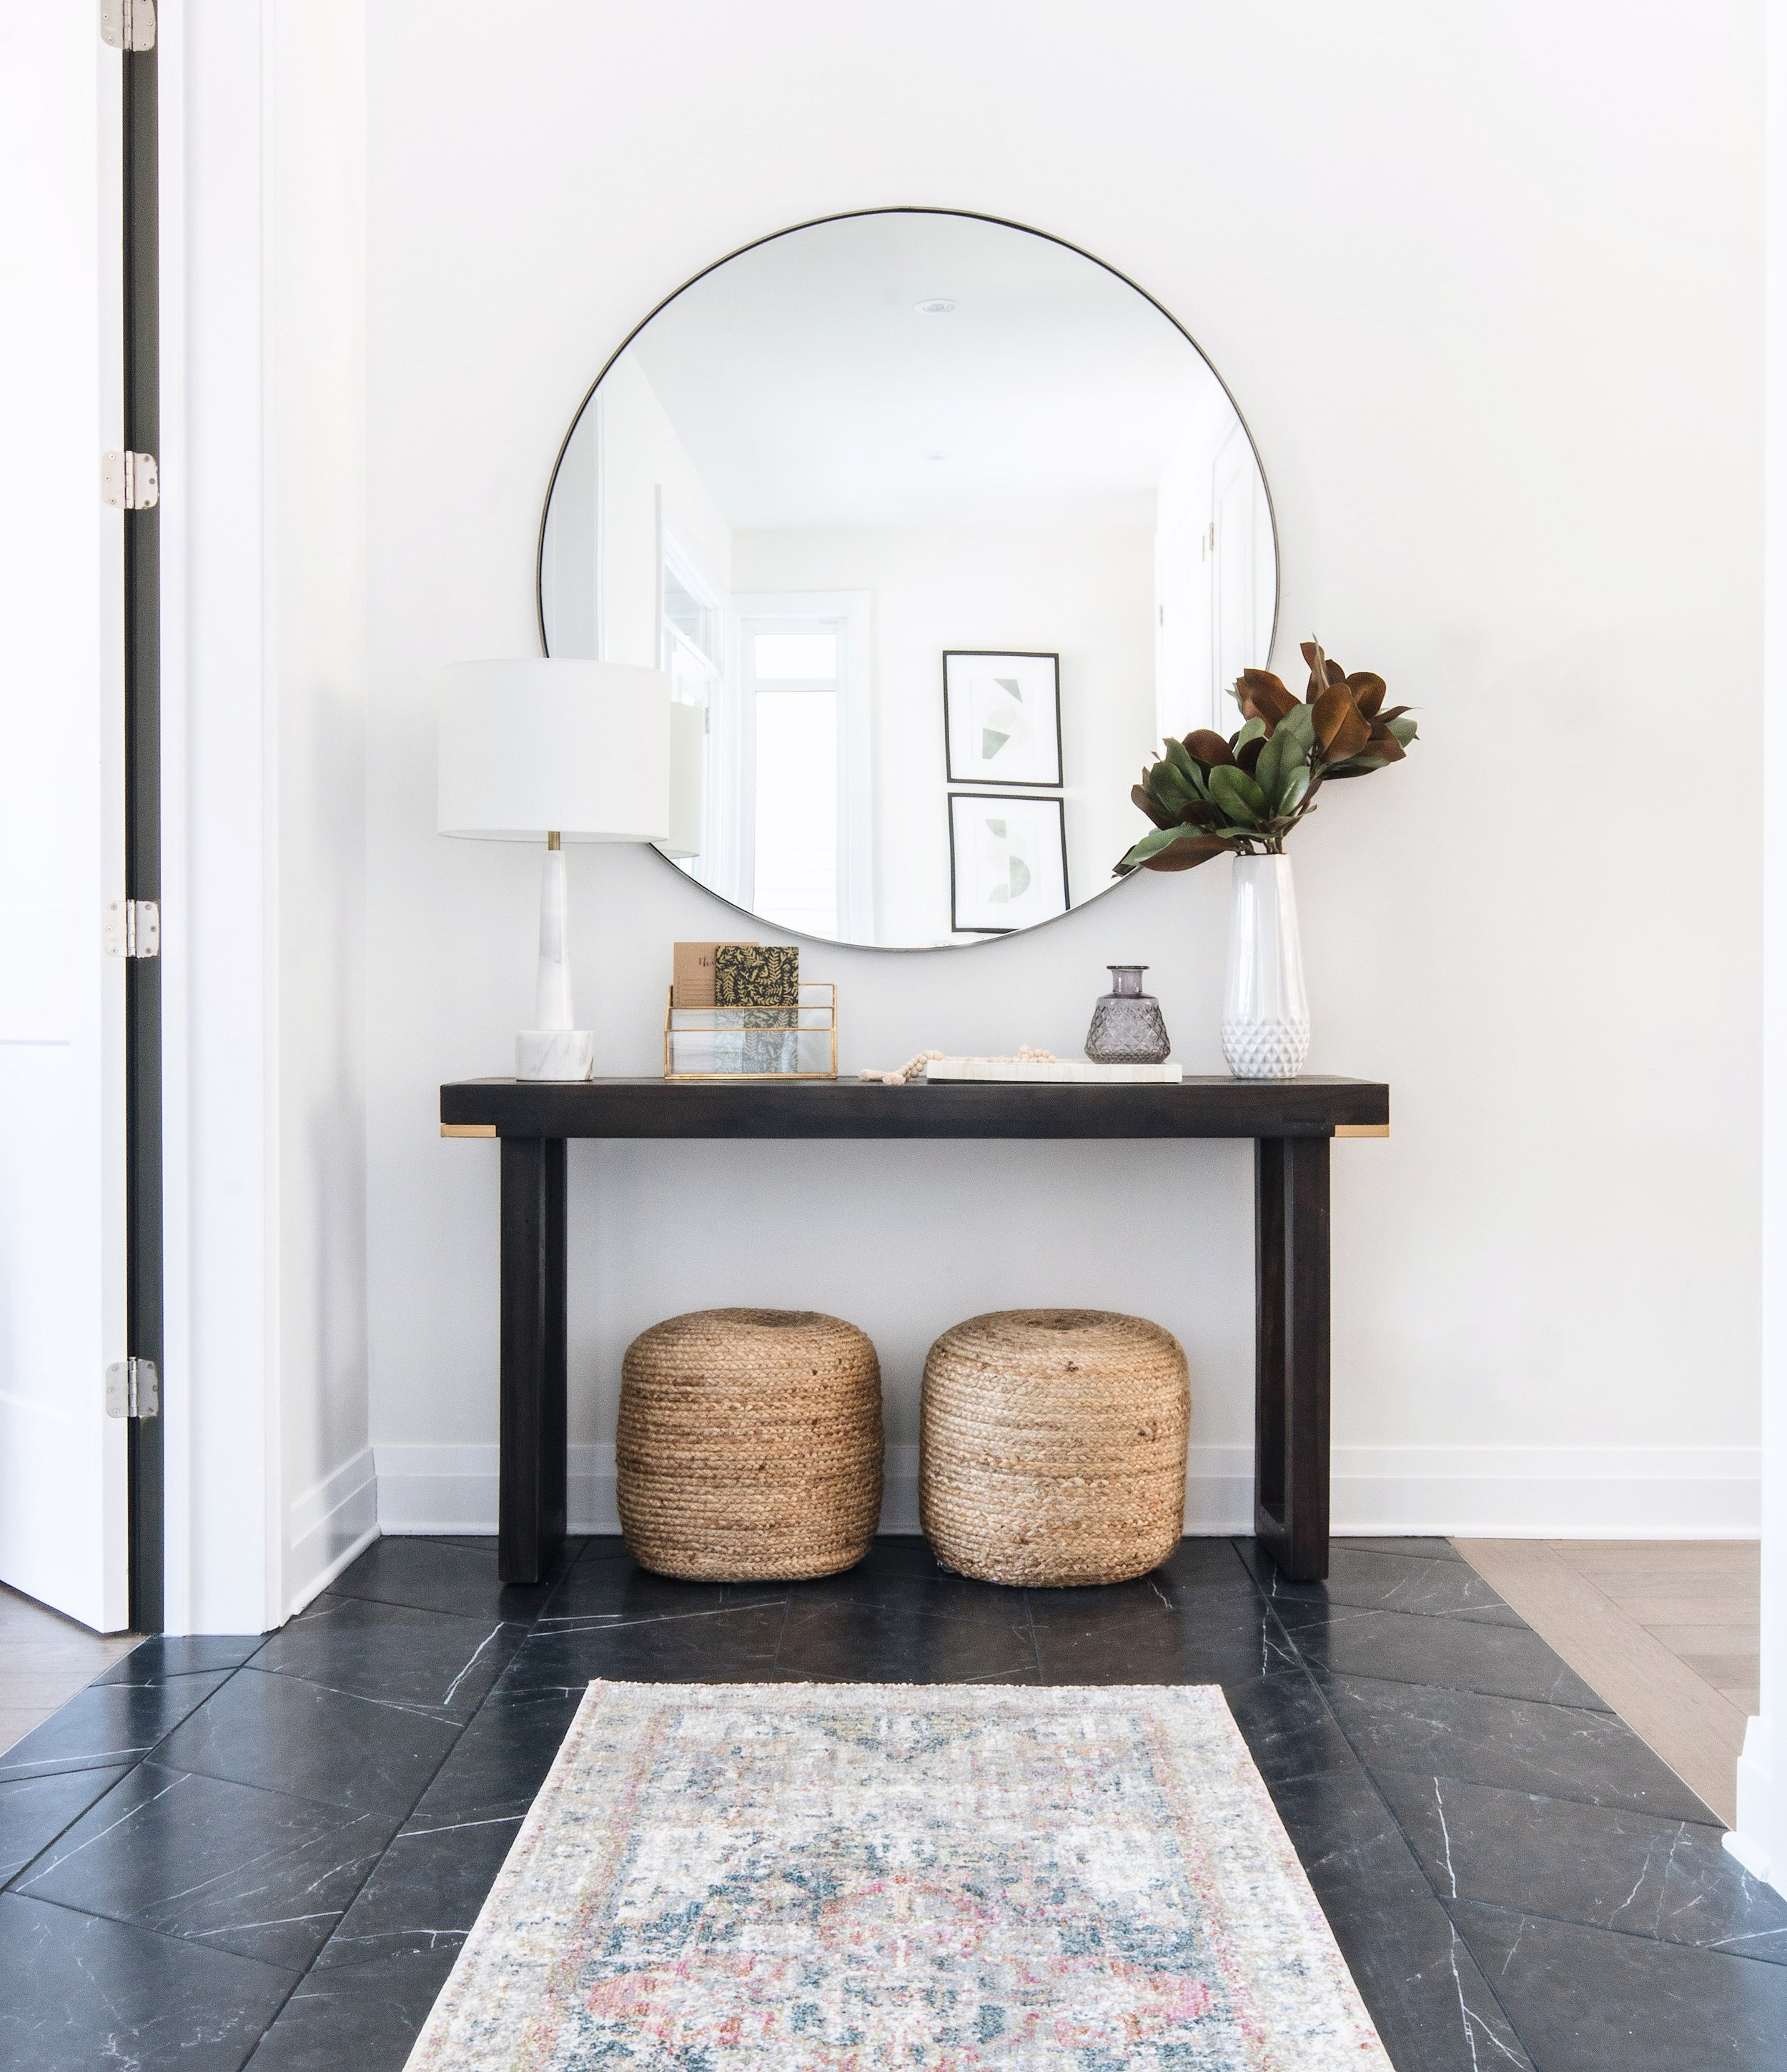 Welcoming entryway design by Ottawa Interior Design Firm Leclair Decor. Entryway Console from Ottawa furniture store LD Shoppe.